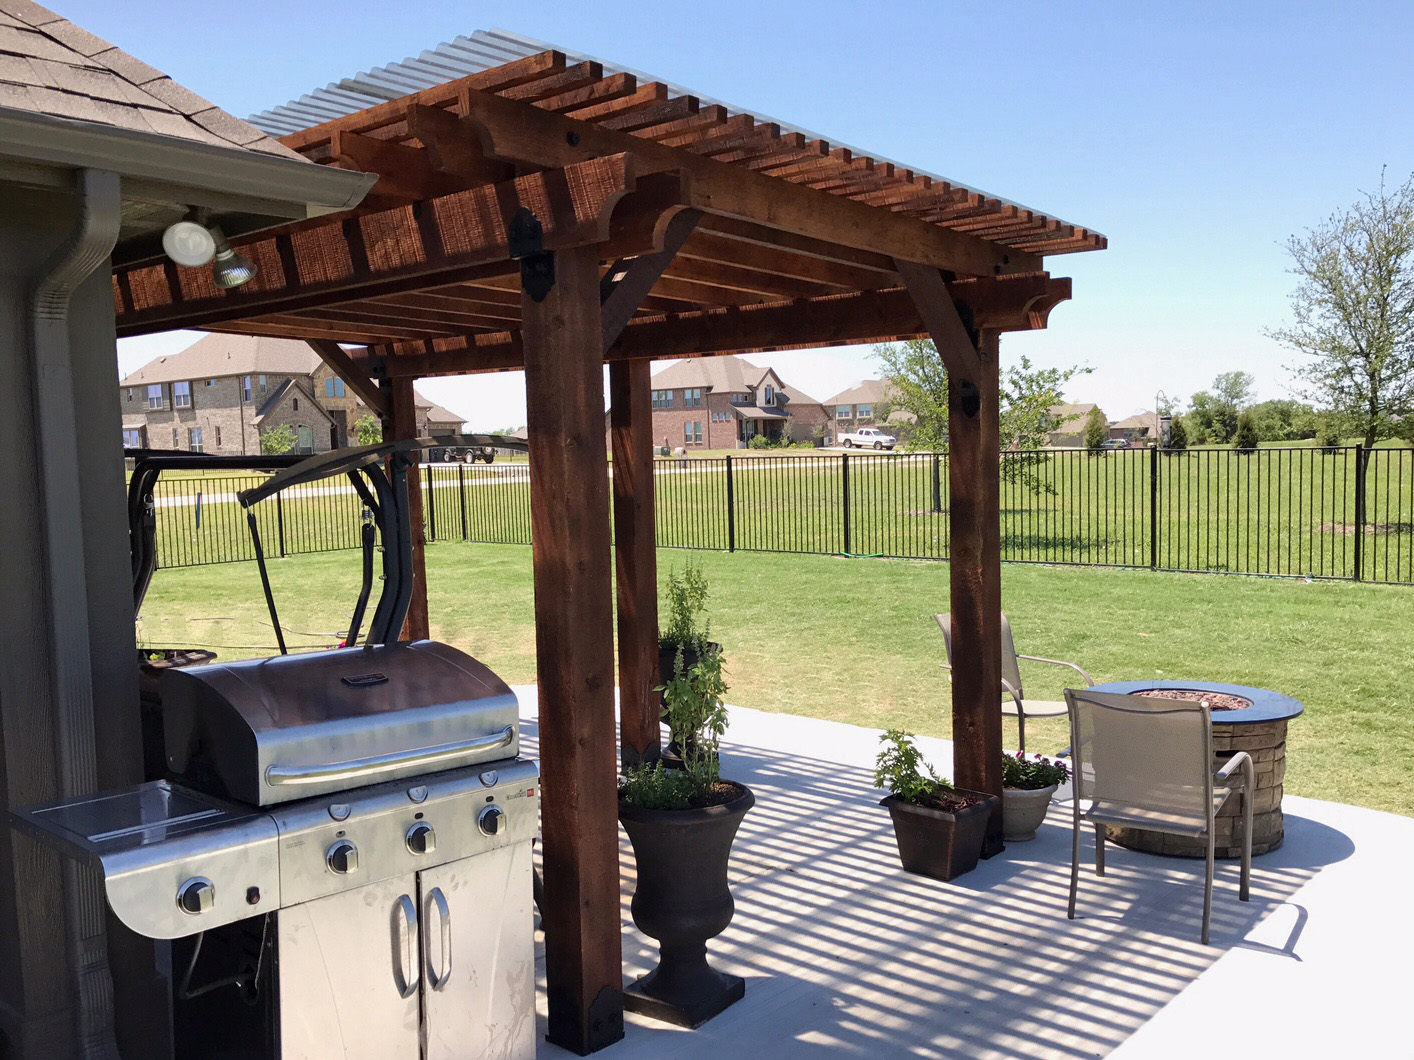 Pergolas | HHH Outdoor Living | United States on Hhh Outdoor Living  id=96585